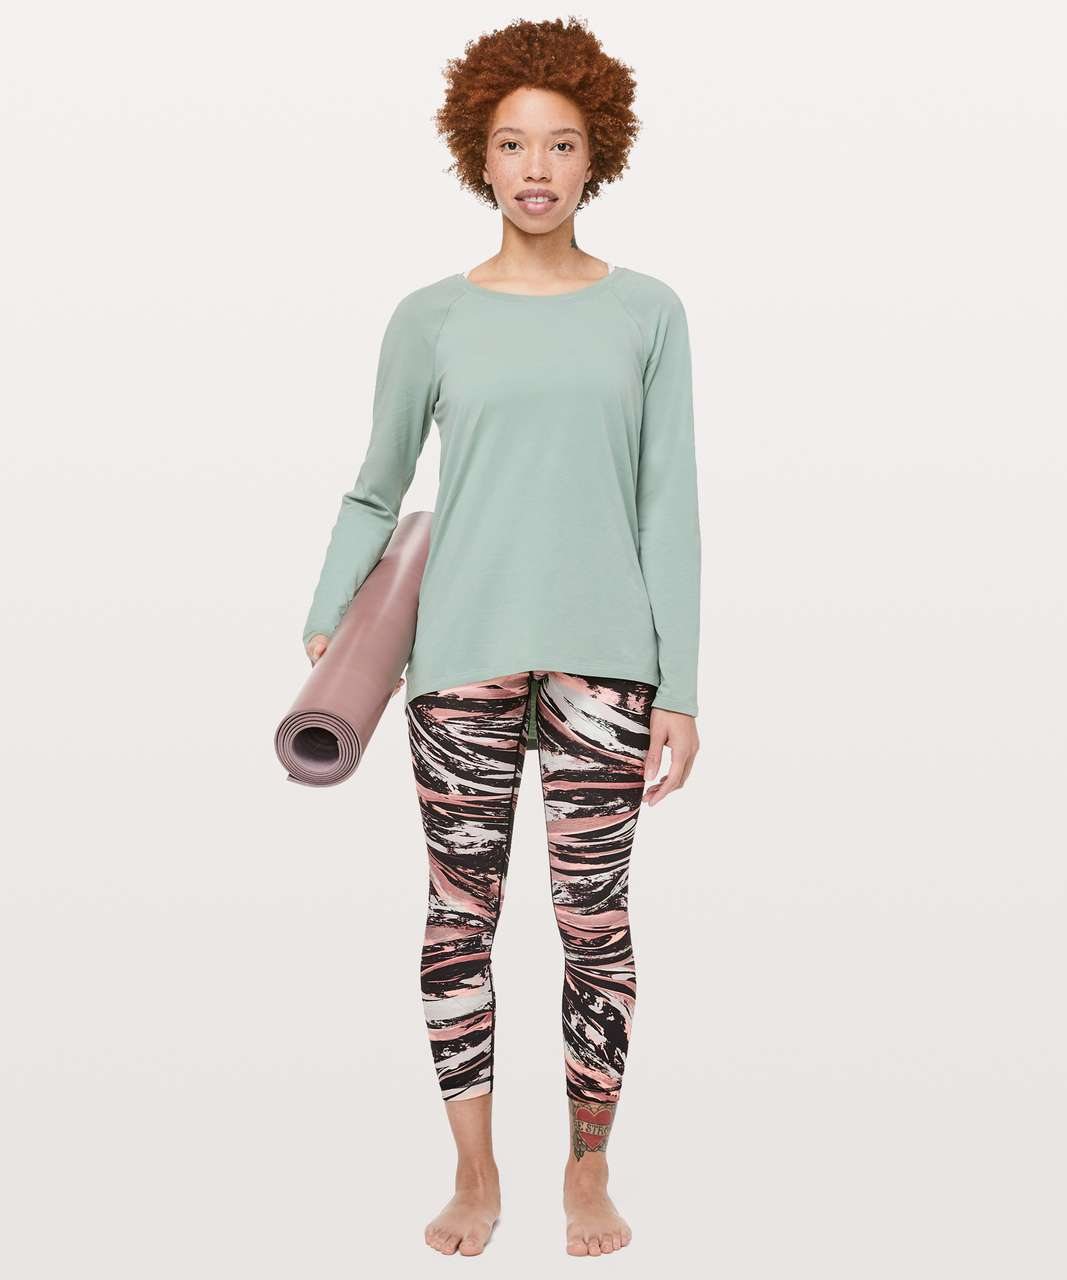 Lululemon Emerald Long Sleeve - Palm Court